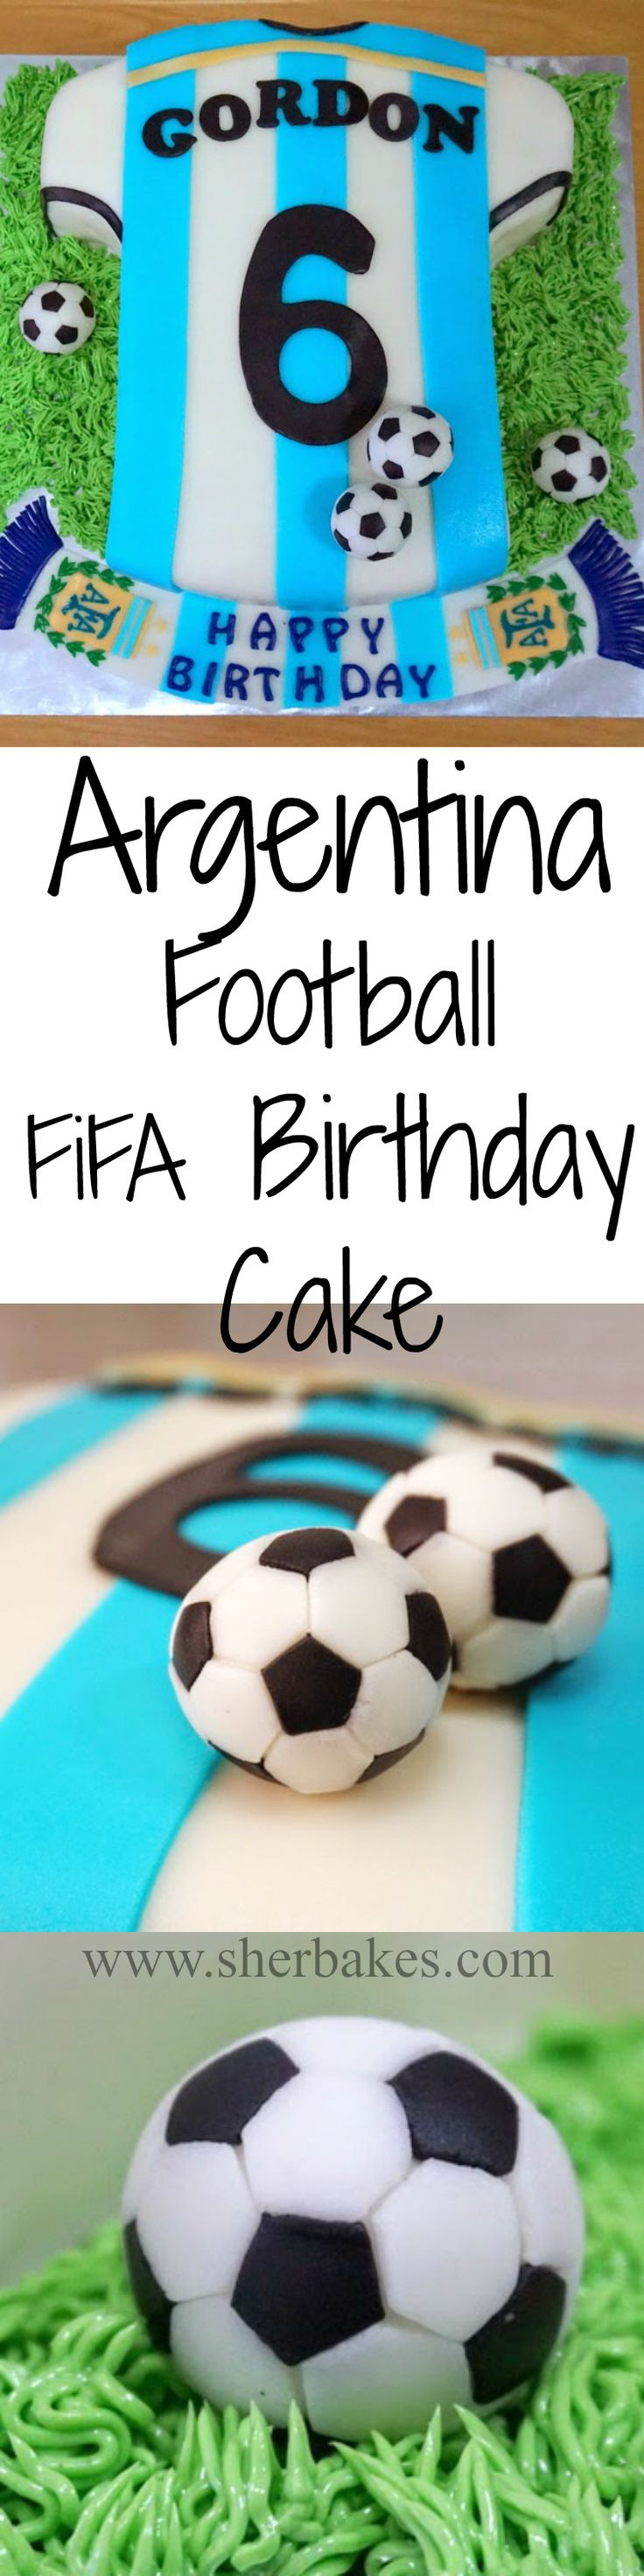 Every Boy's dream- Argentina Football FIFA World cup birthday cake!